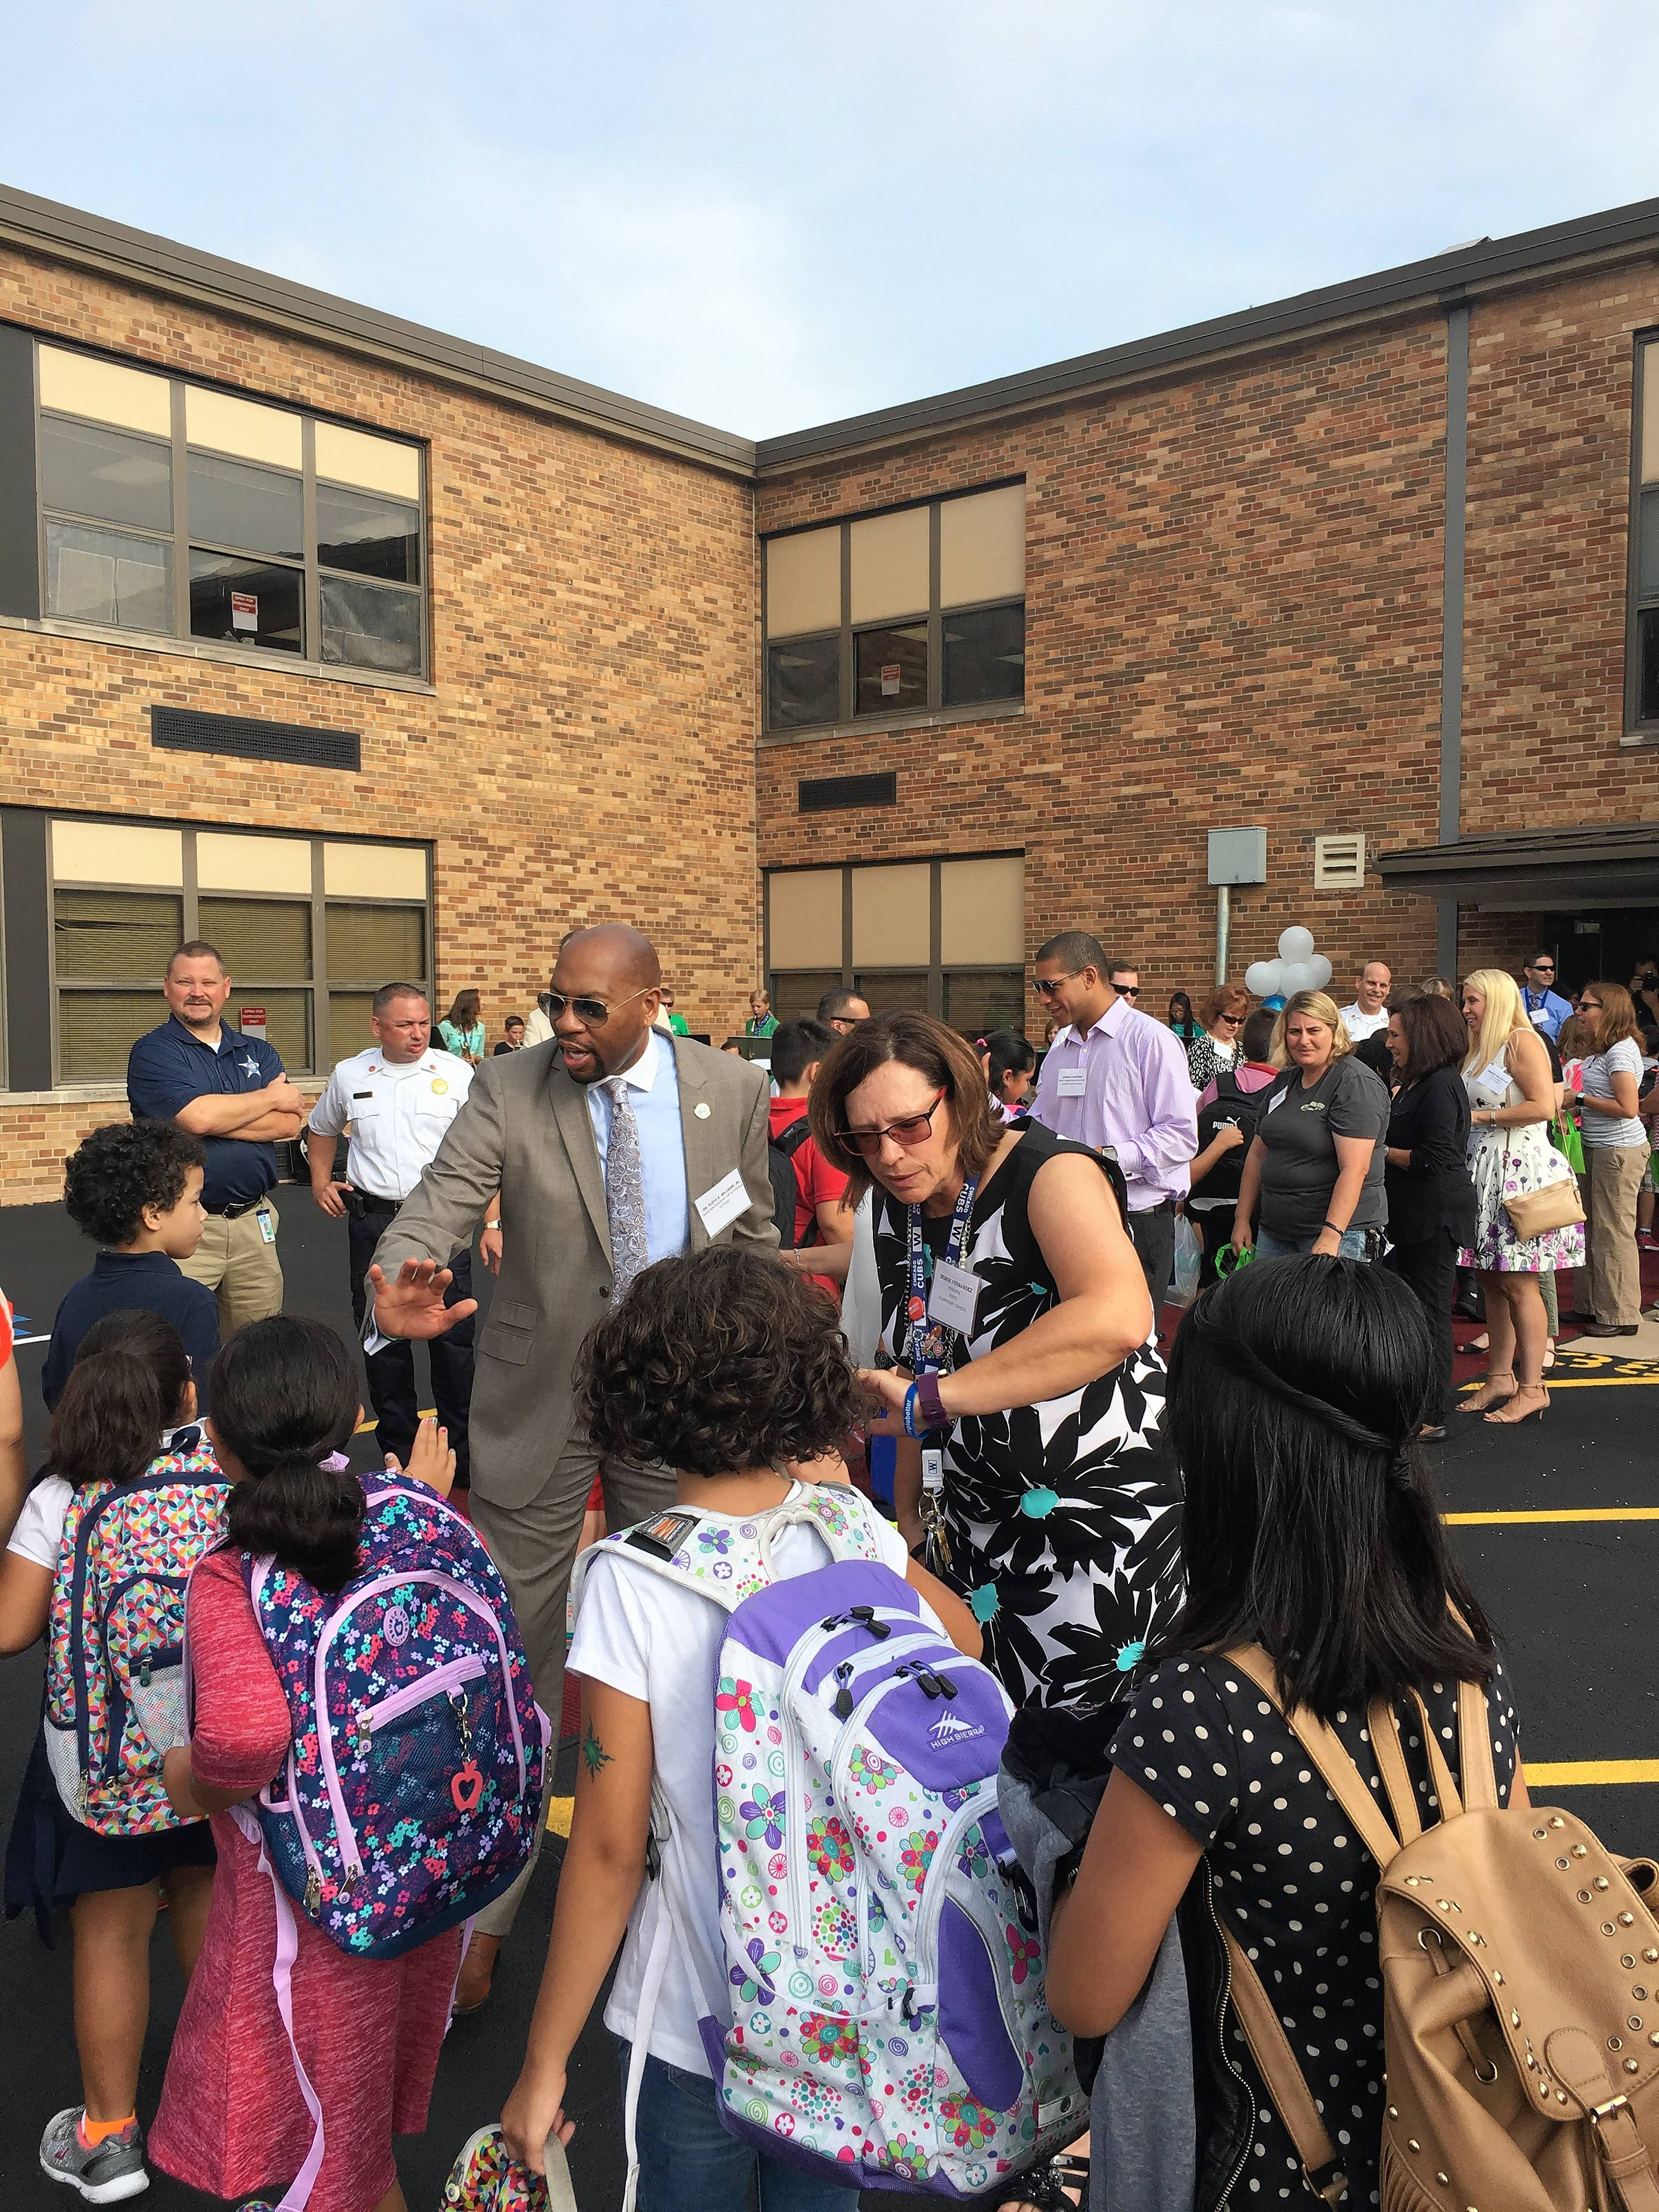 District 62 Superintendent Floyd Williams and North Elementary School Principal Denise Fernandez greet students entering school on their first day.